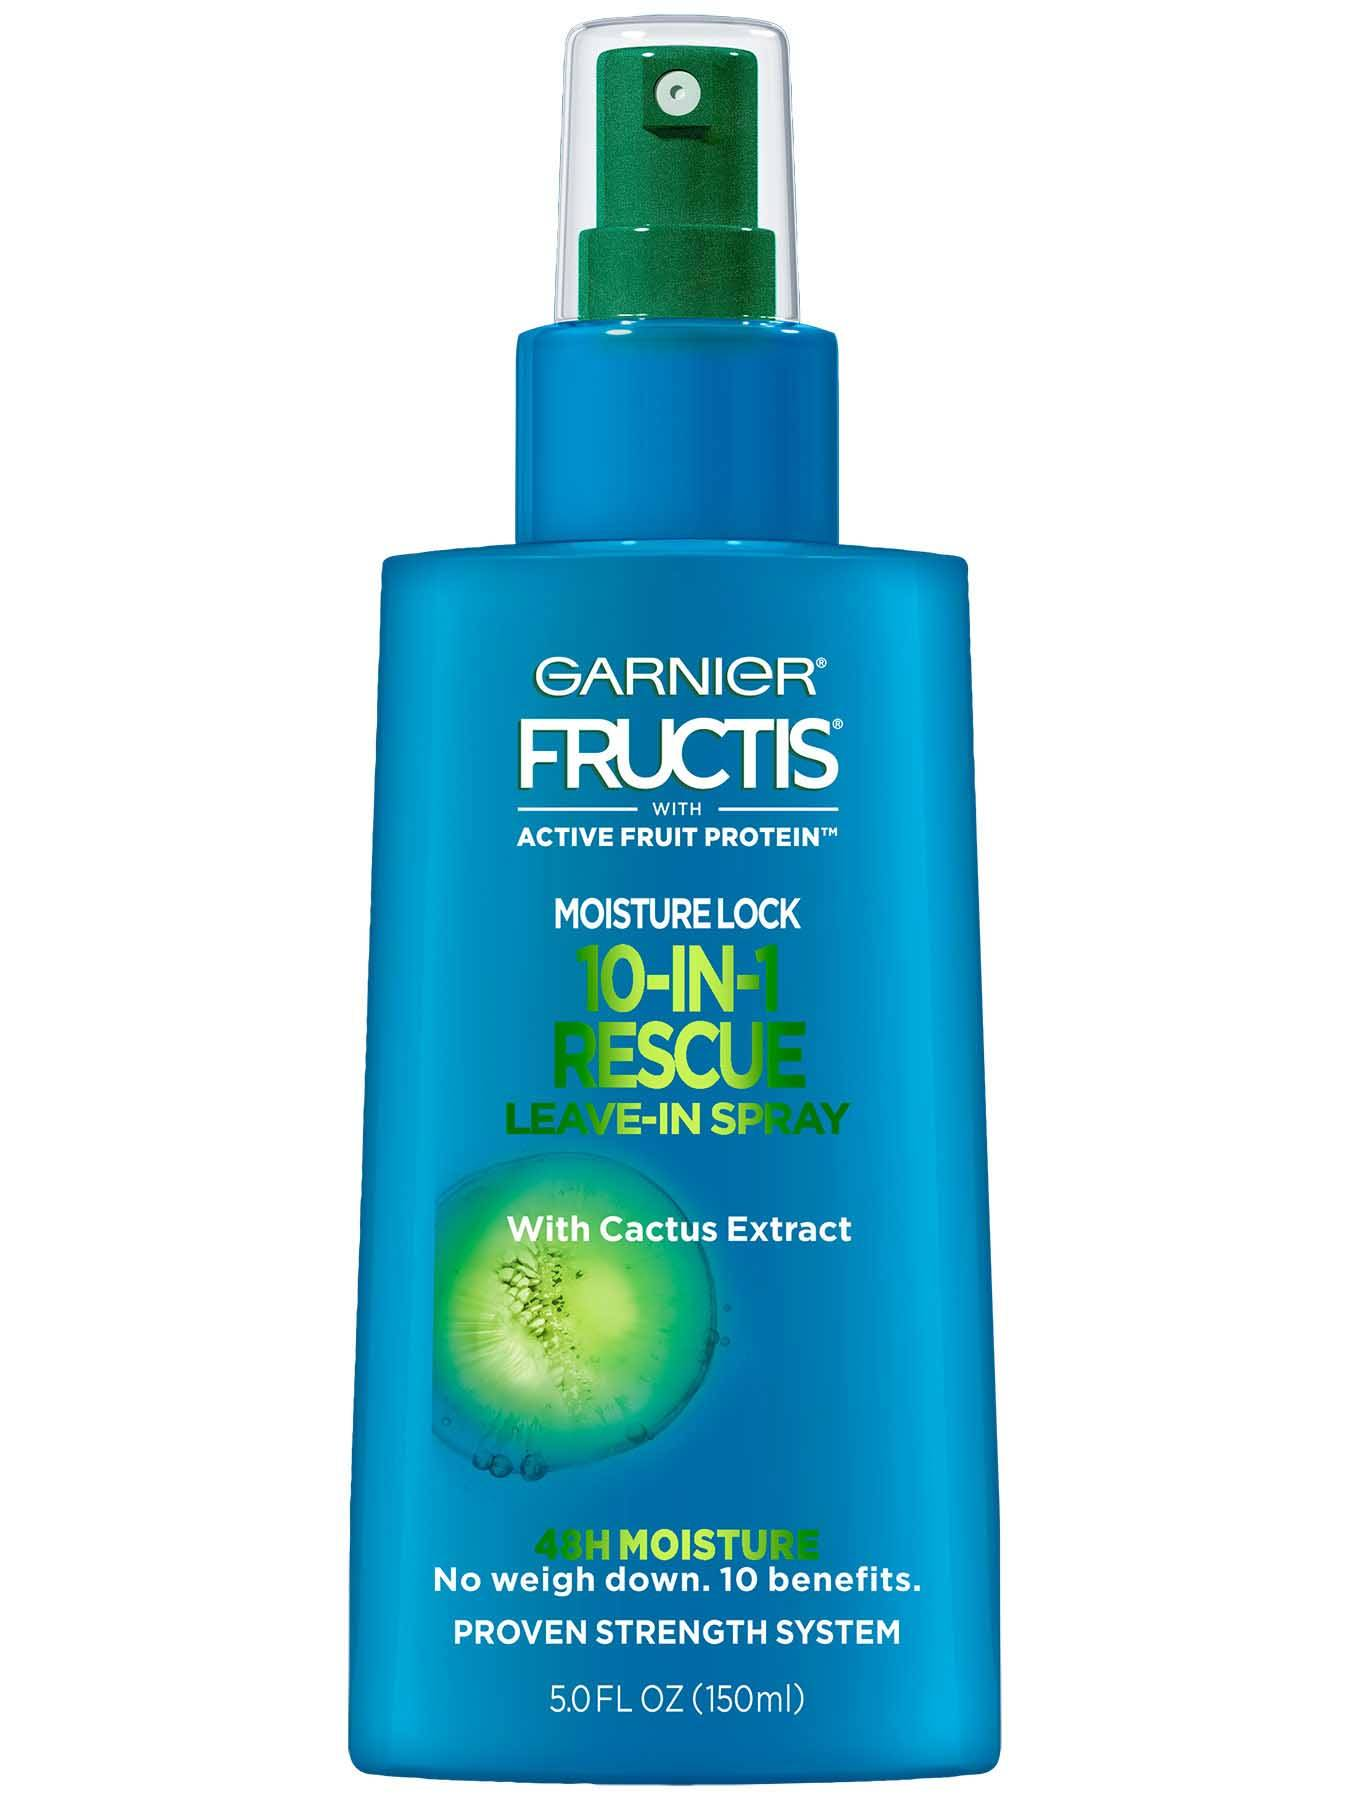 Garnier Fructis moisture lock 10 in 1 leave in spray